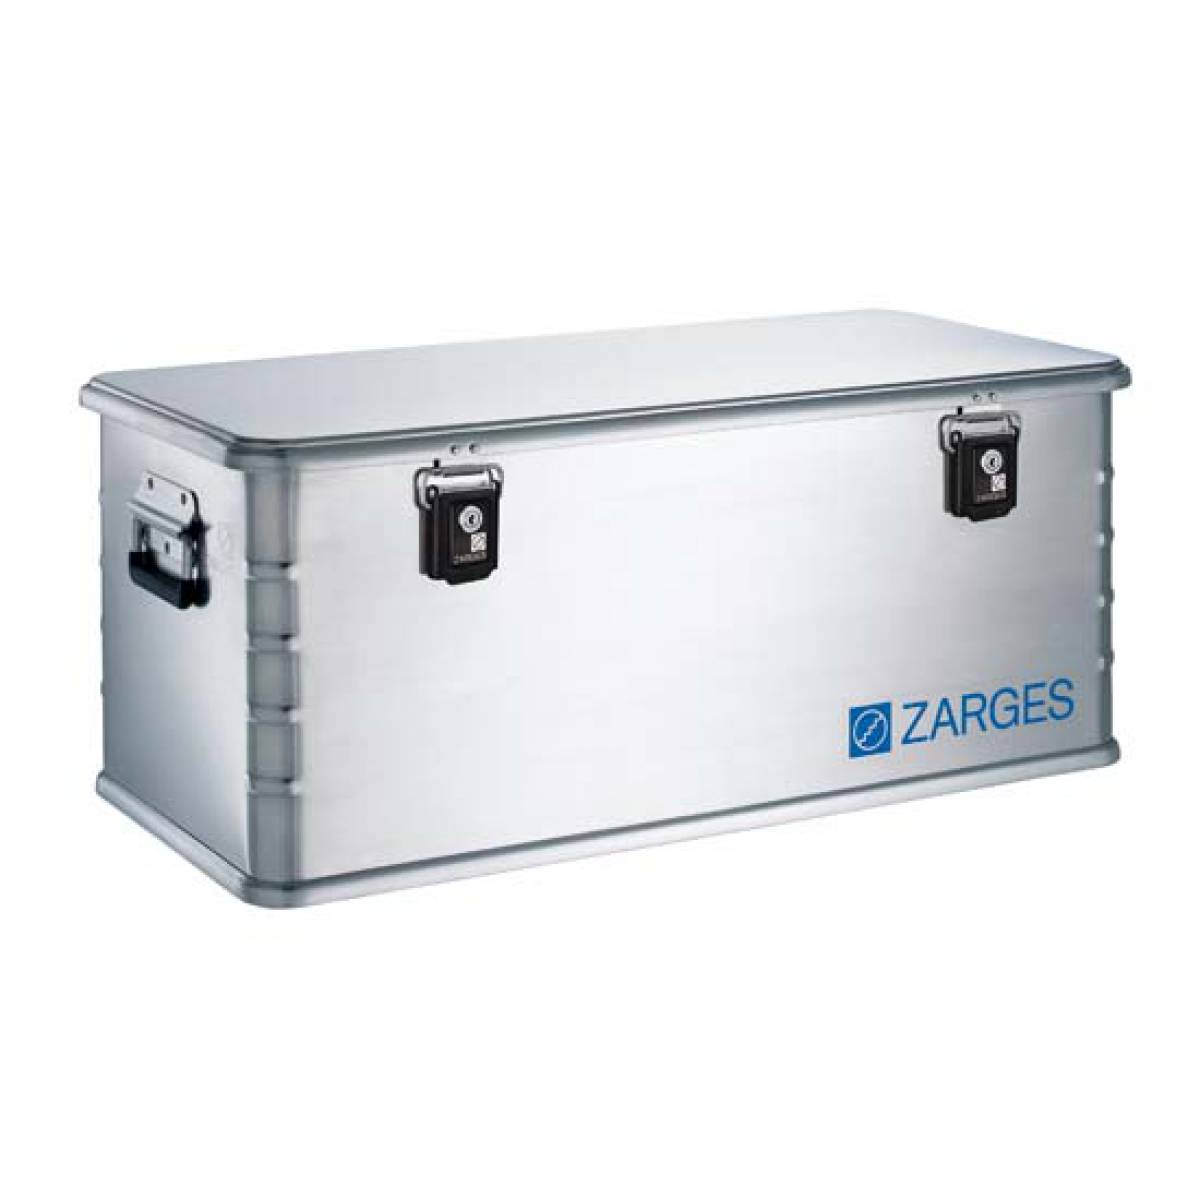 ZARGES Box - 40862